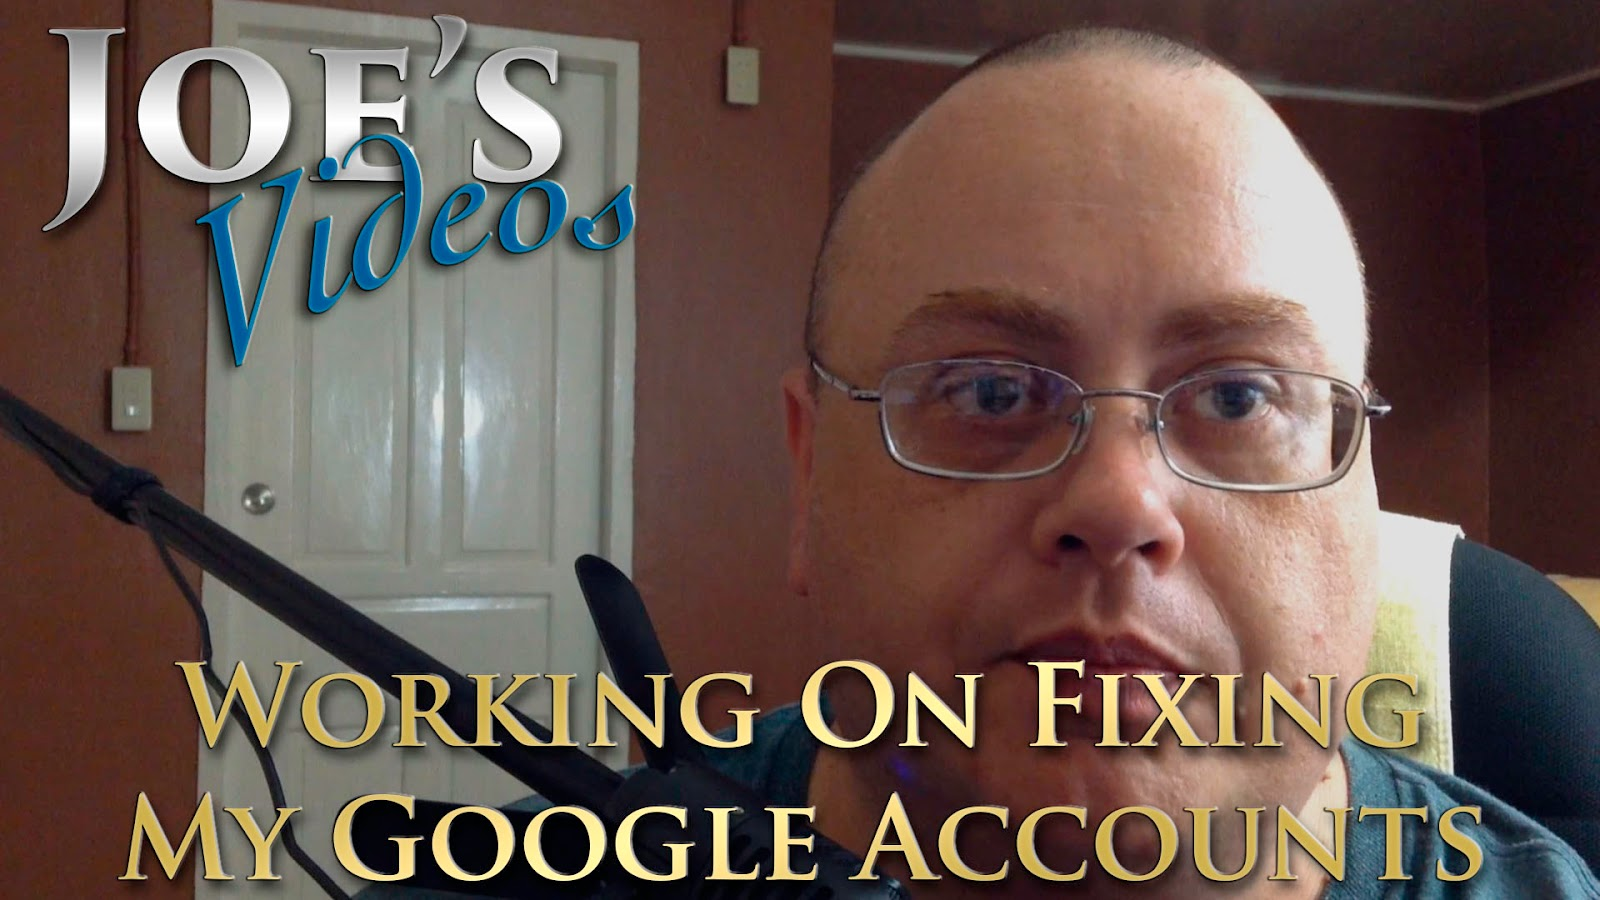 Working On Fixing My Google Accounts